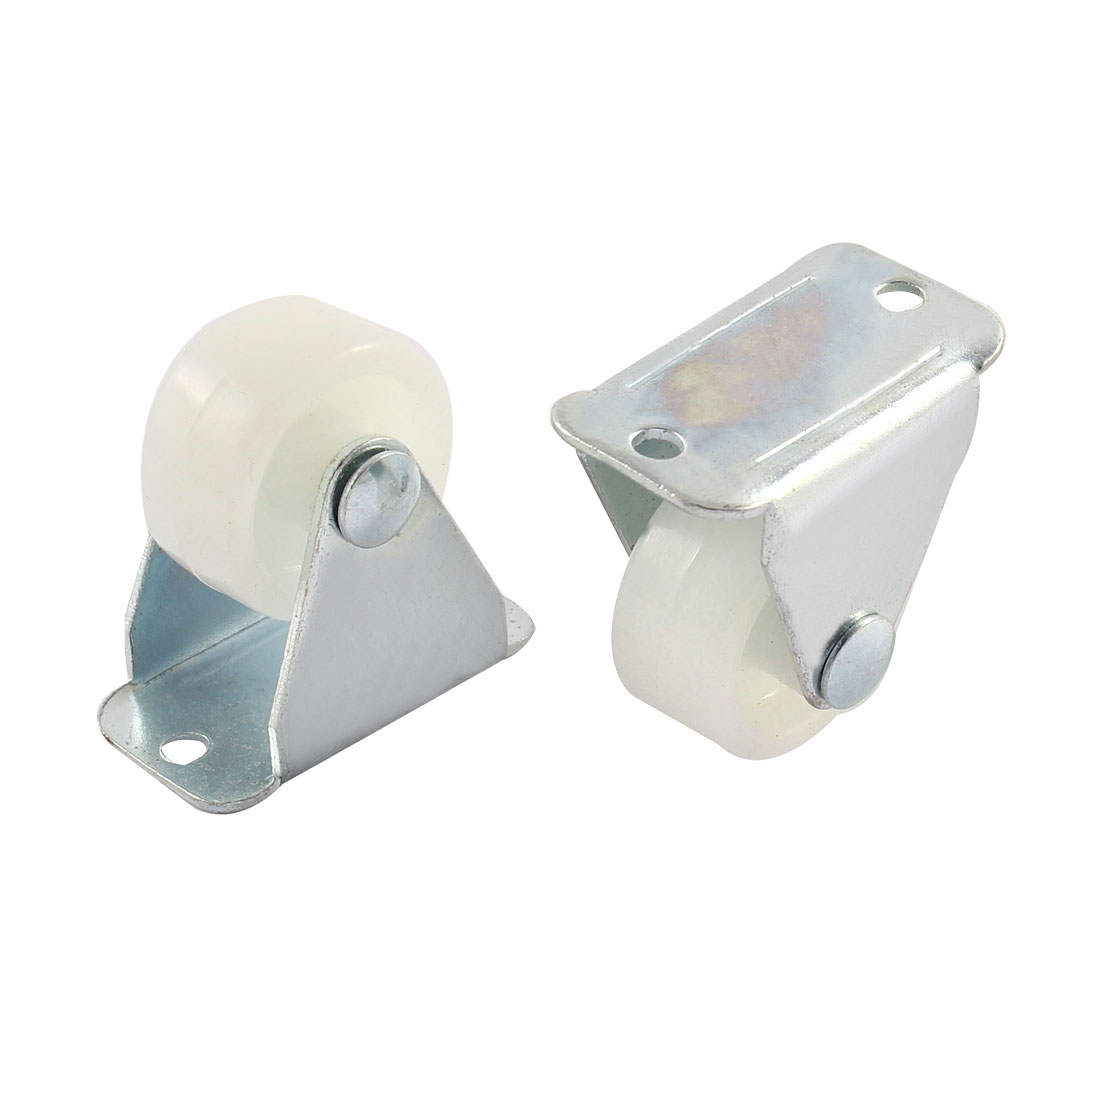 Shopping Trolley Rectangle Plate Fixed Universial Caster Wheels 2 Pcs